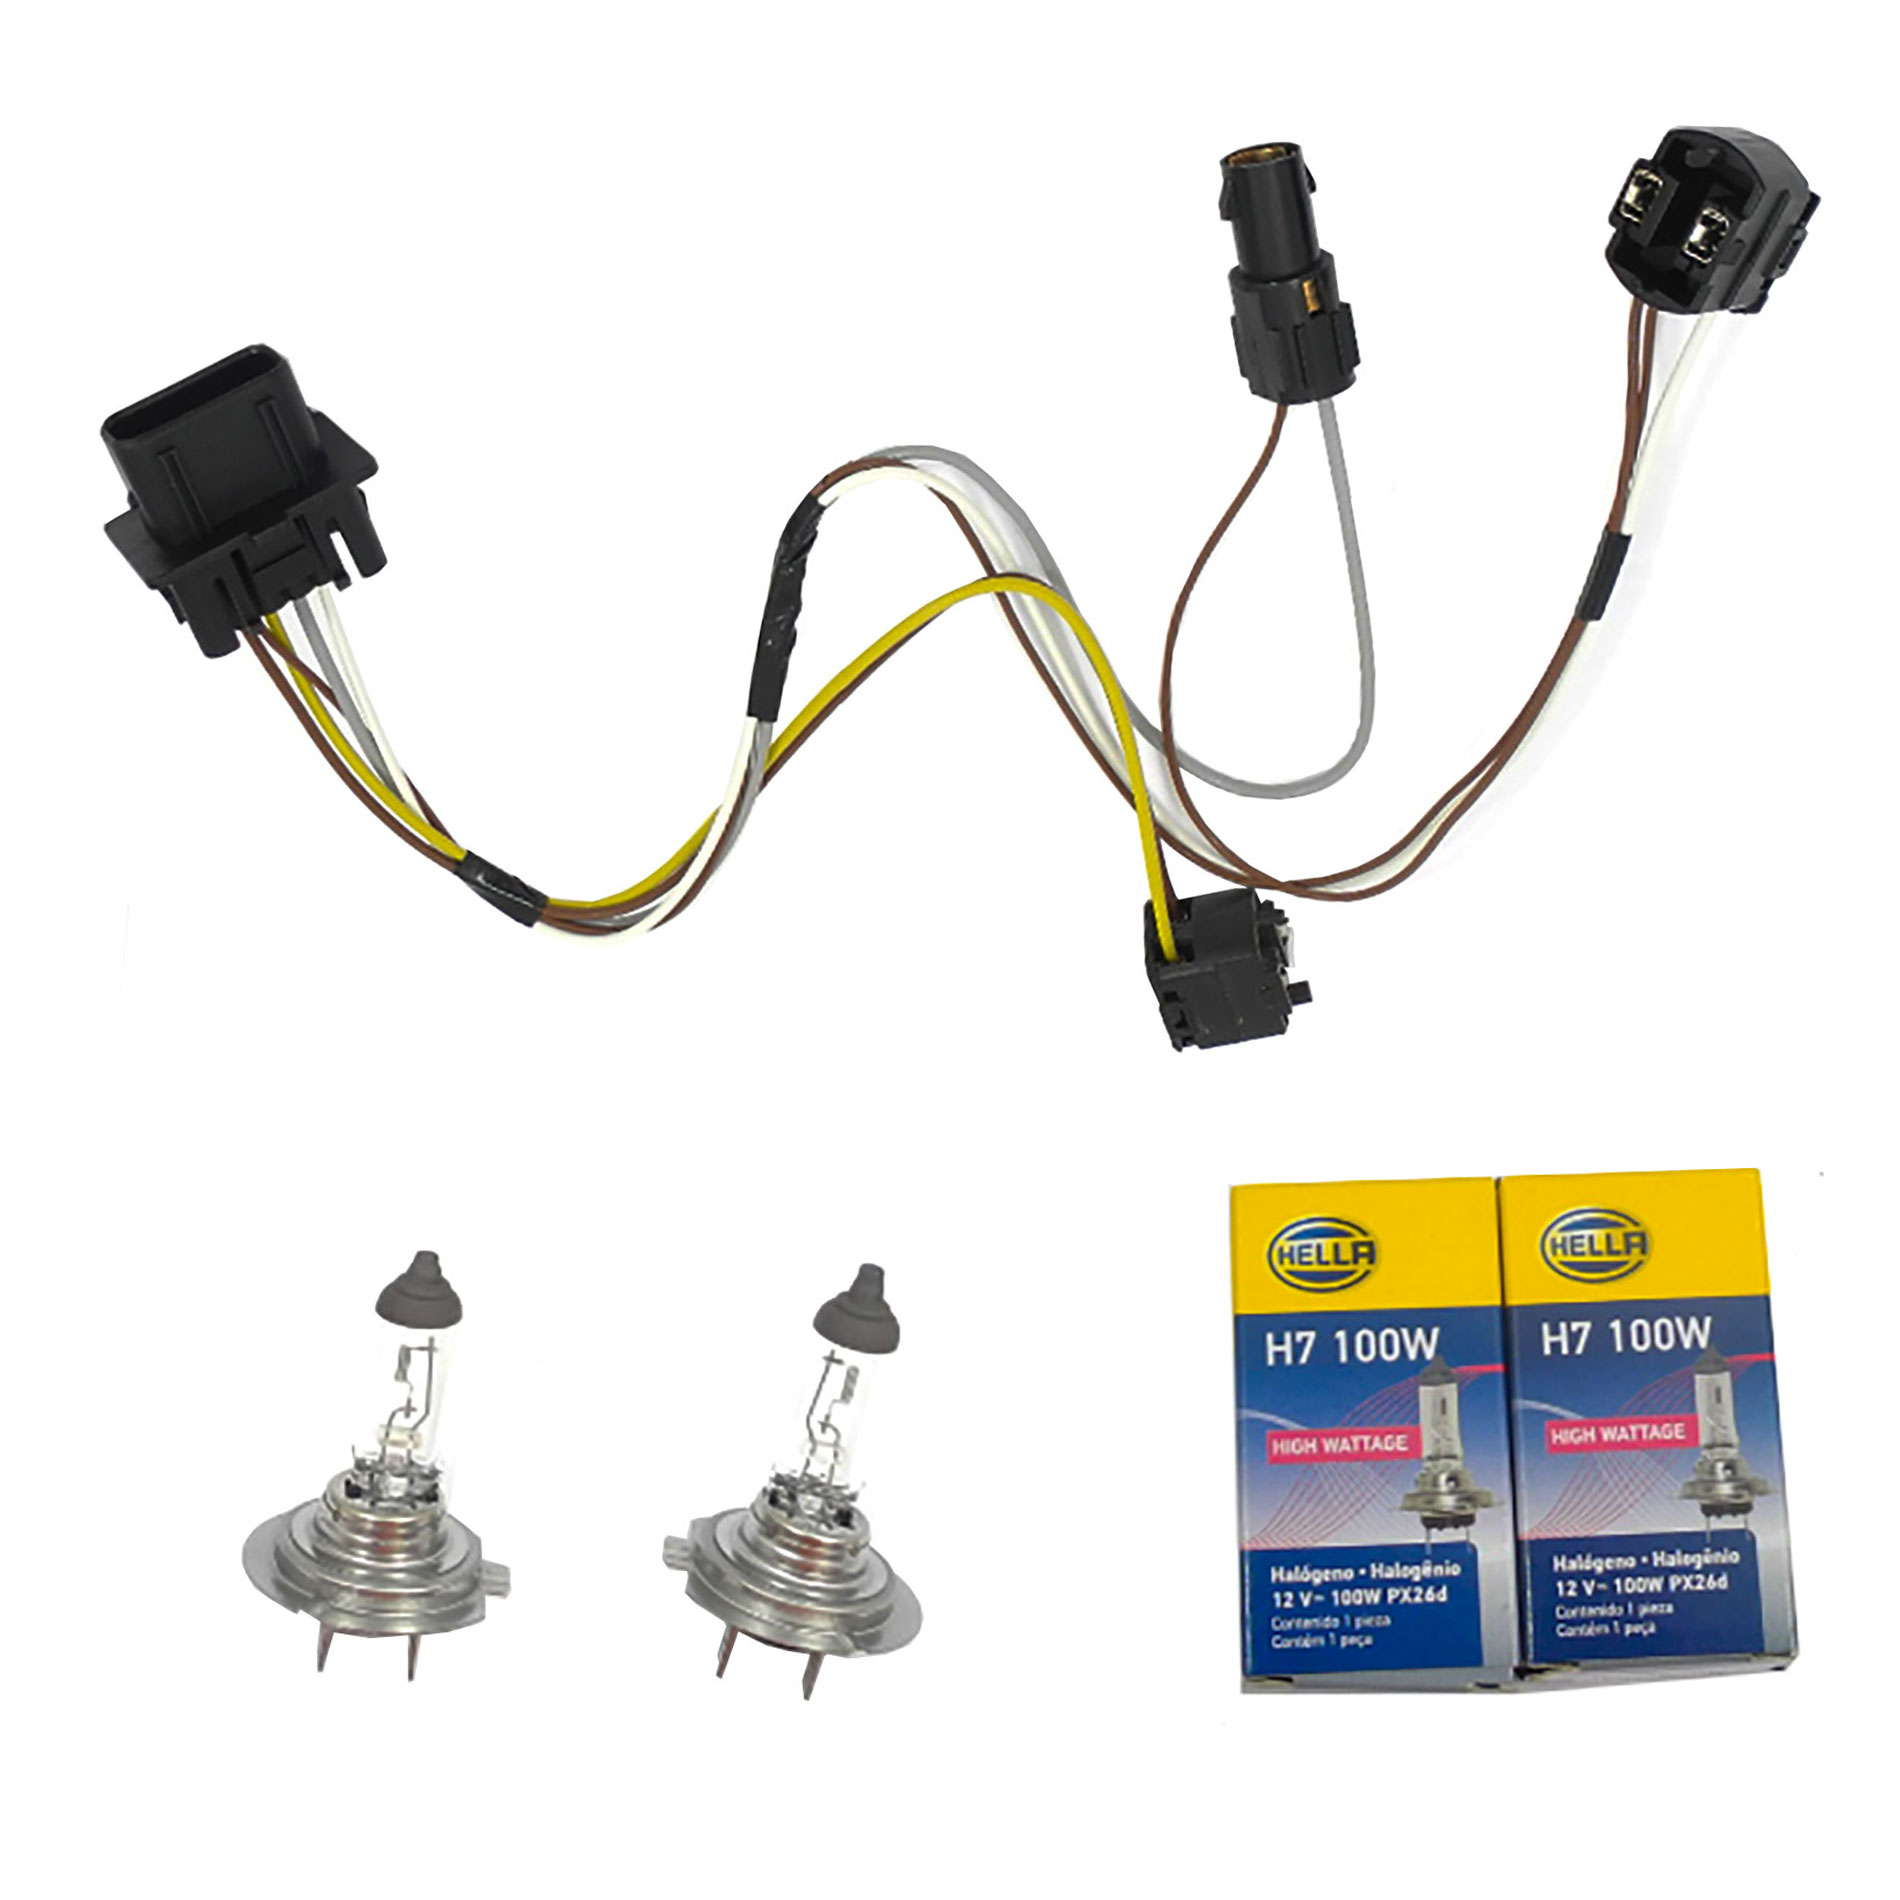 small resolution of cf advance for 96 03 mercedes benz e300 e320 e420 e430 e500 e55 amg 1997 mercedes e320 problems 1997 mercedes e320 headlight wiring harness